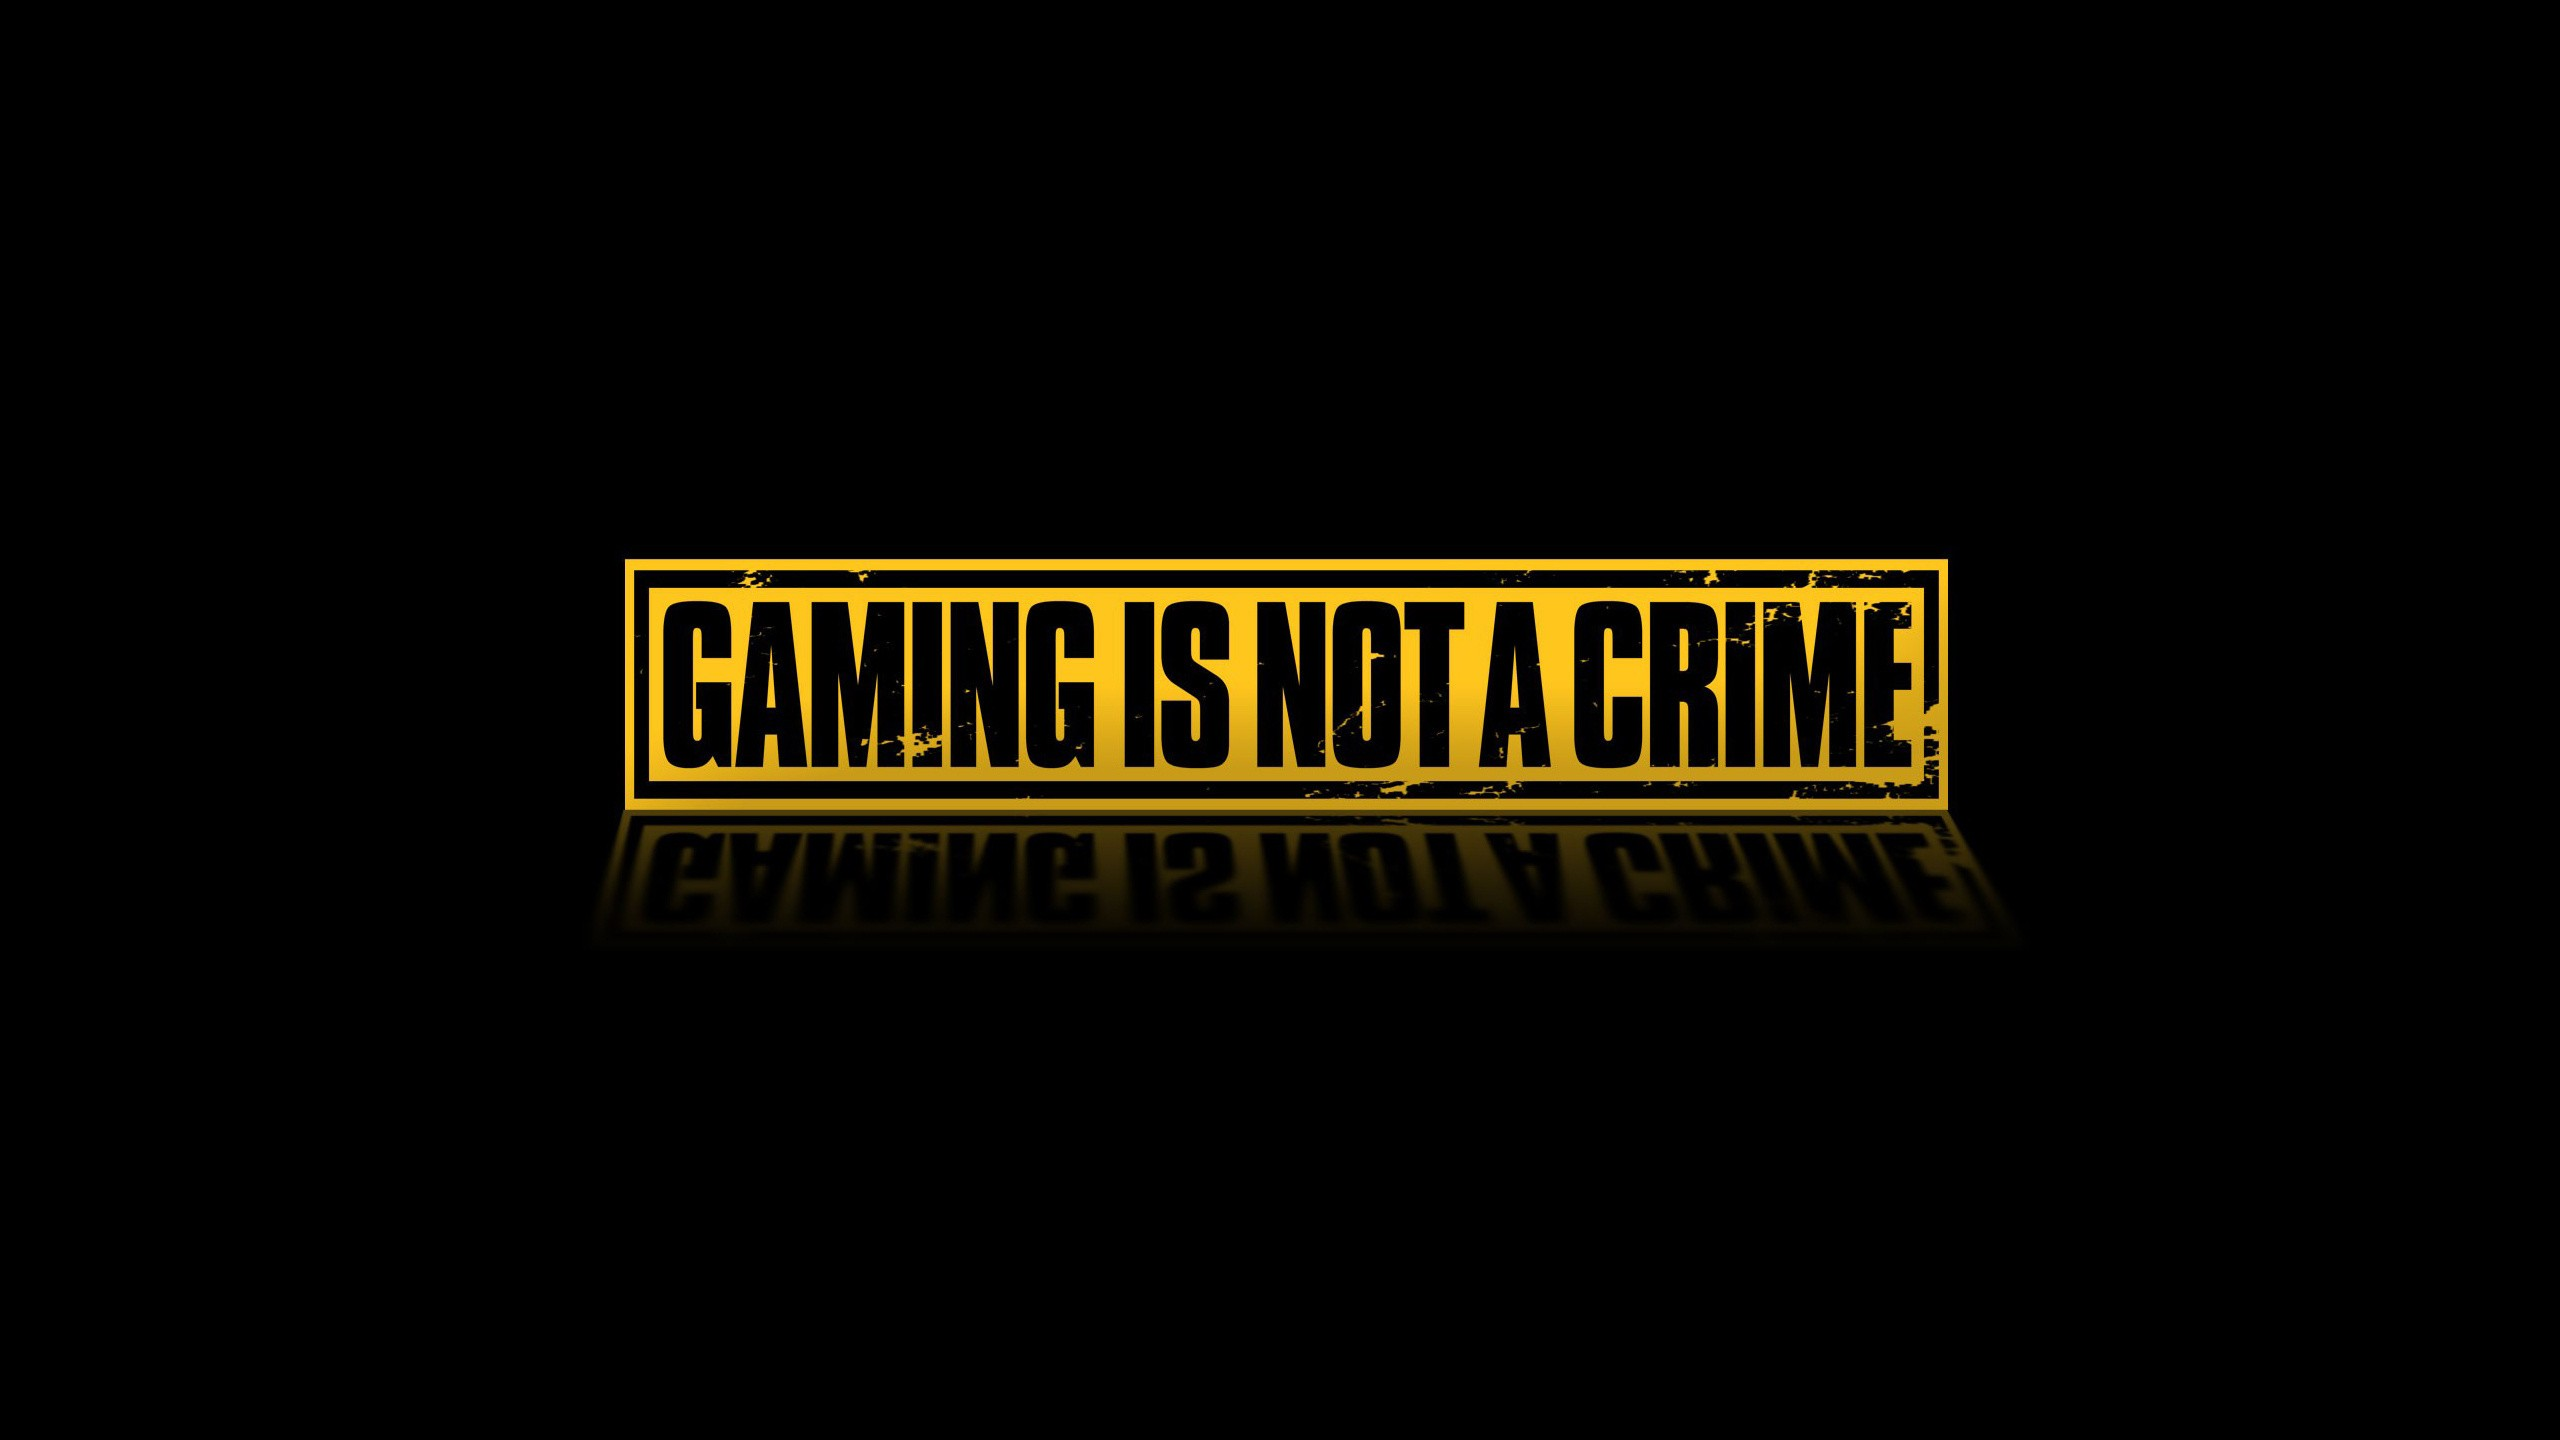 2560x1440 Gaming Wallpapers Gaming crime 2560x1440